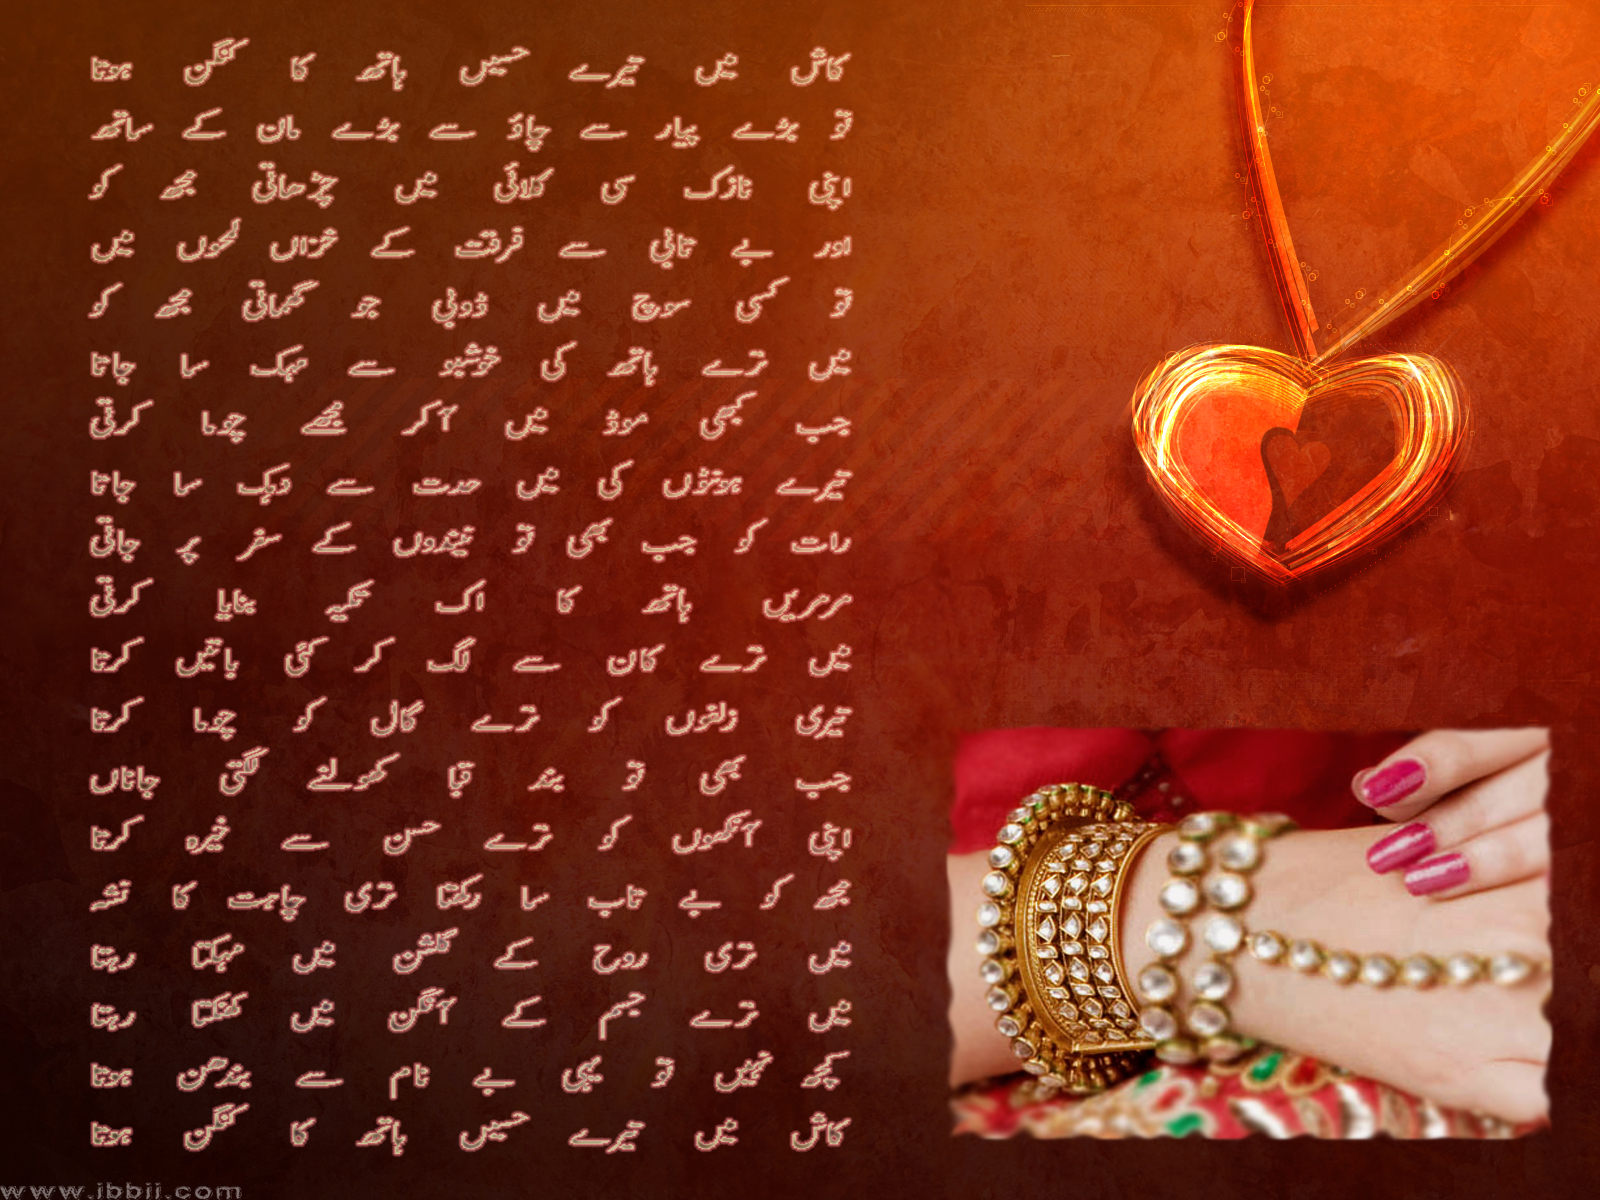 50 love poetry wallpapers in urdu on wallpapersafari - Best love shayari wallpaper ...